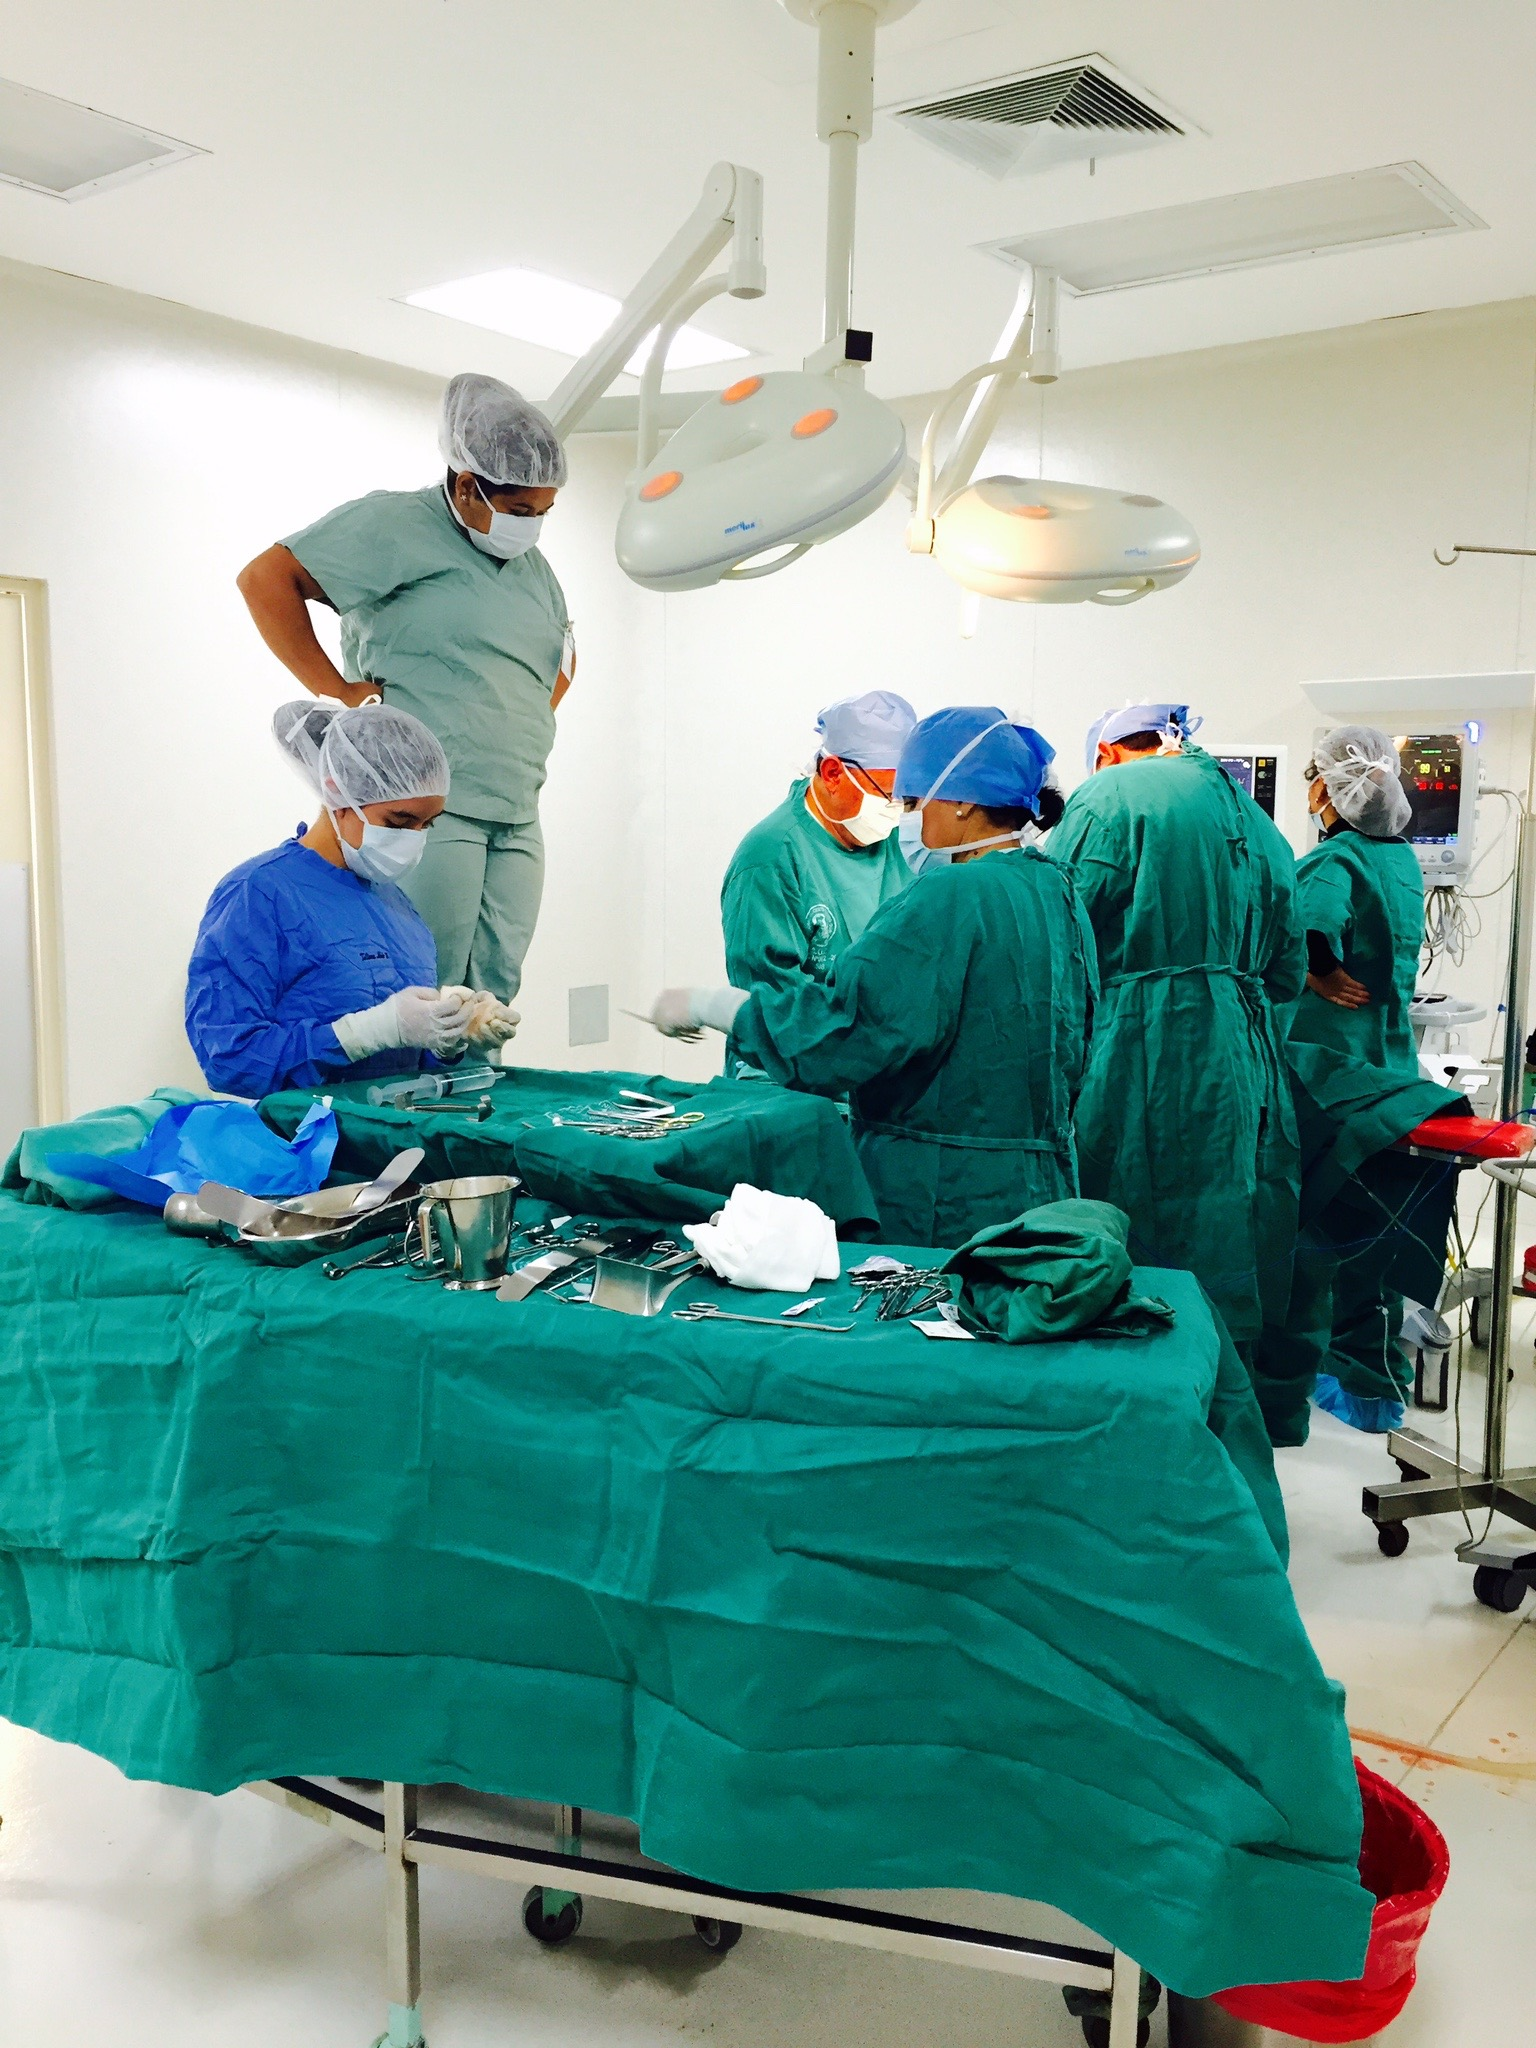 The group shadowing during a surgery!